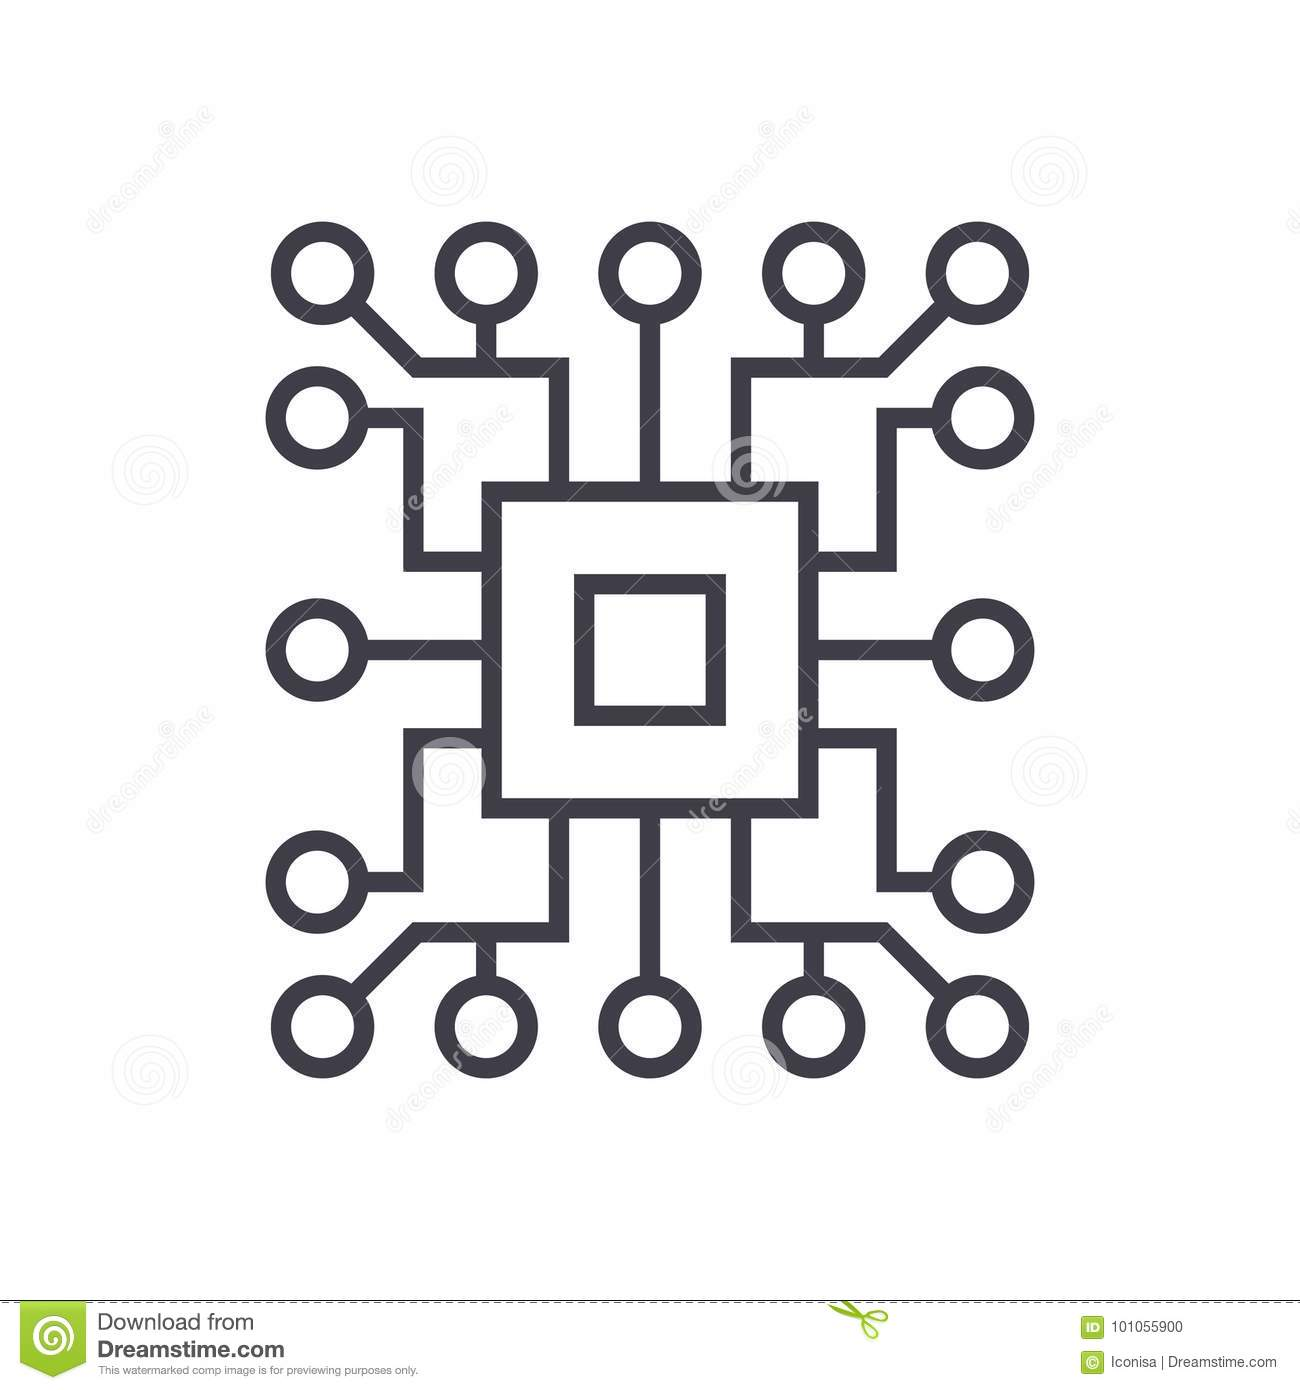 computer science circuit vector line icon  sign  illustration on background  editable strokes